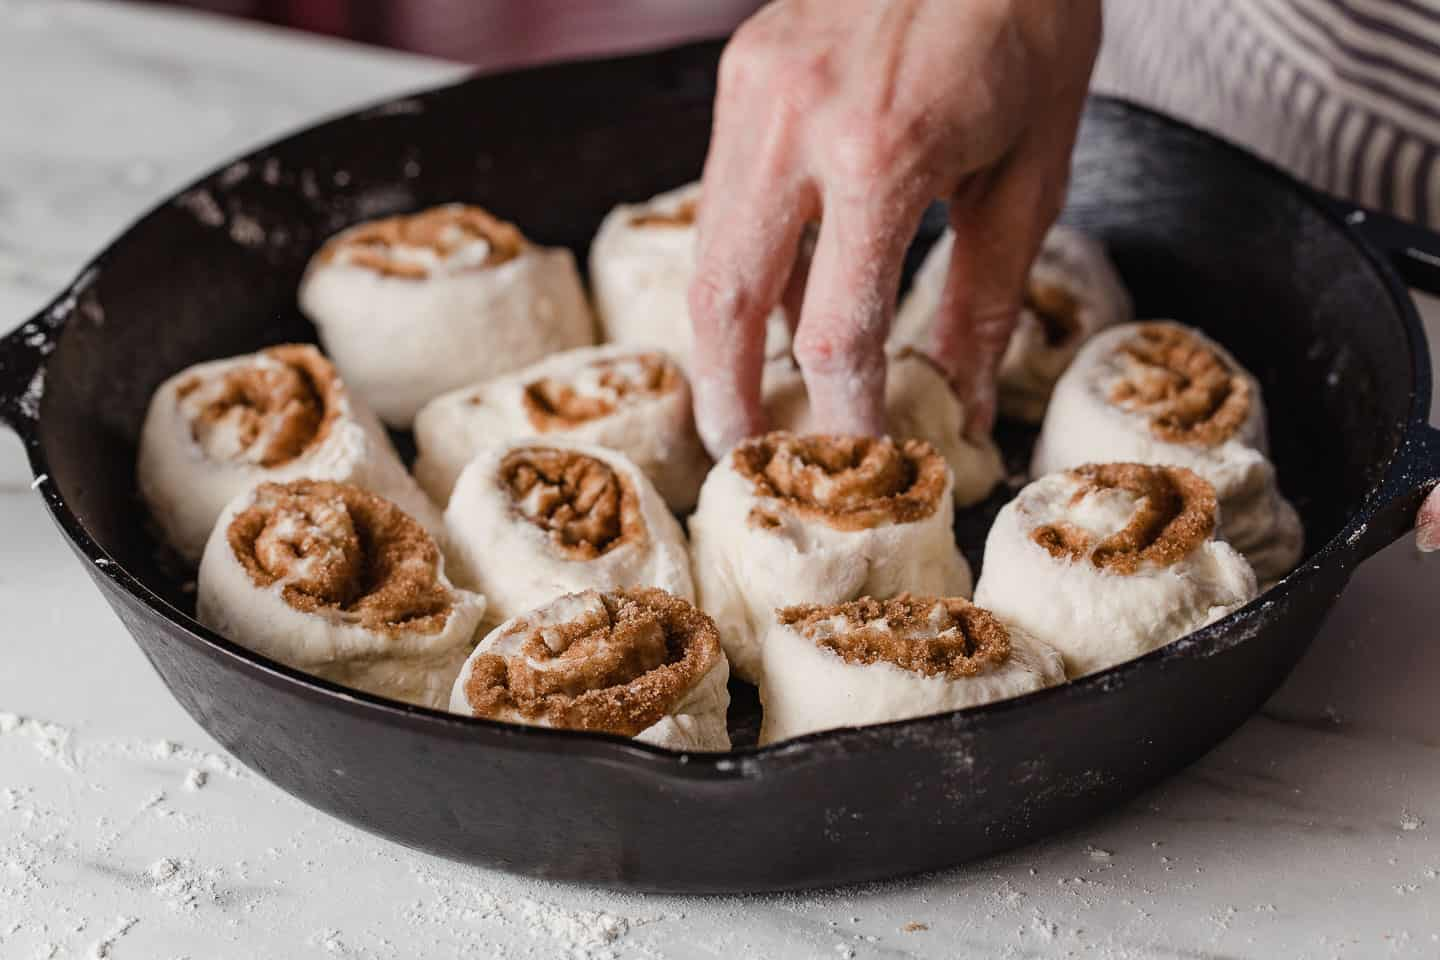 A woman placing unbaked cinnamon roll dough into a cast iron skillet.